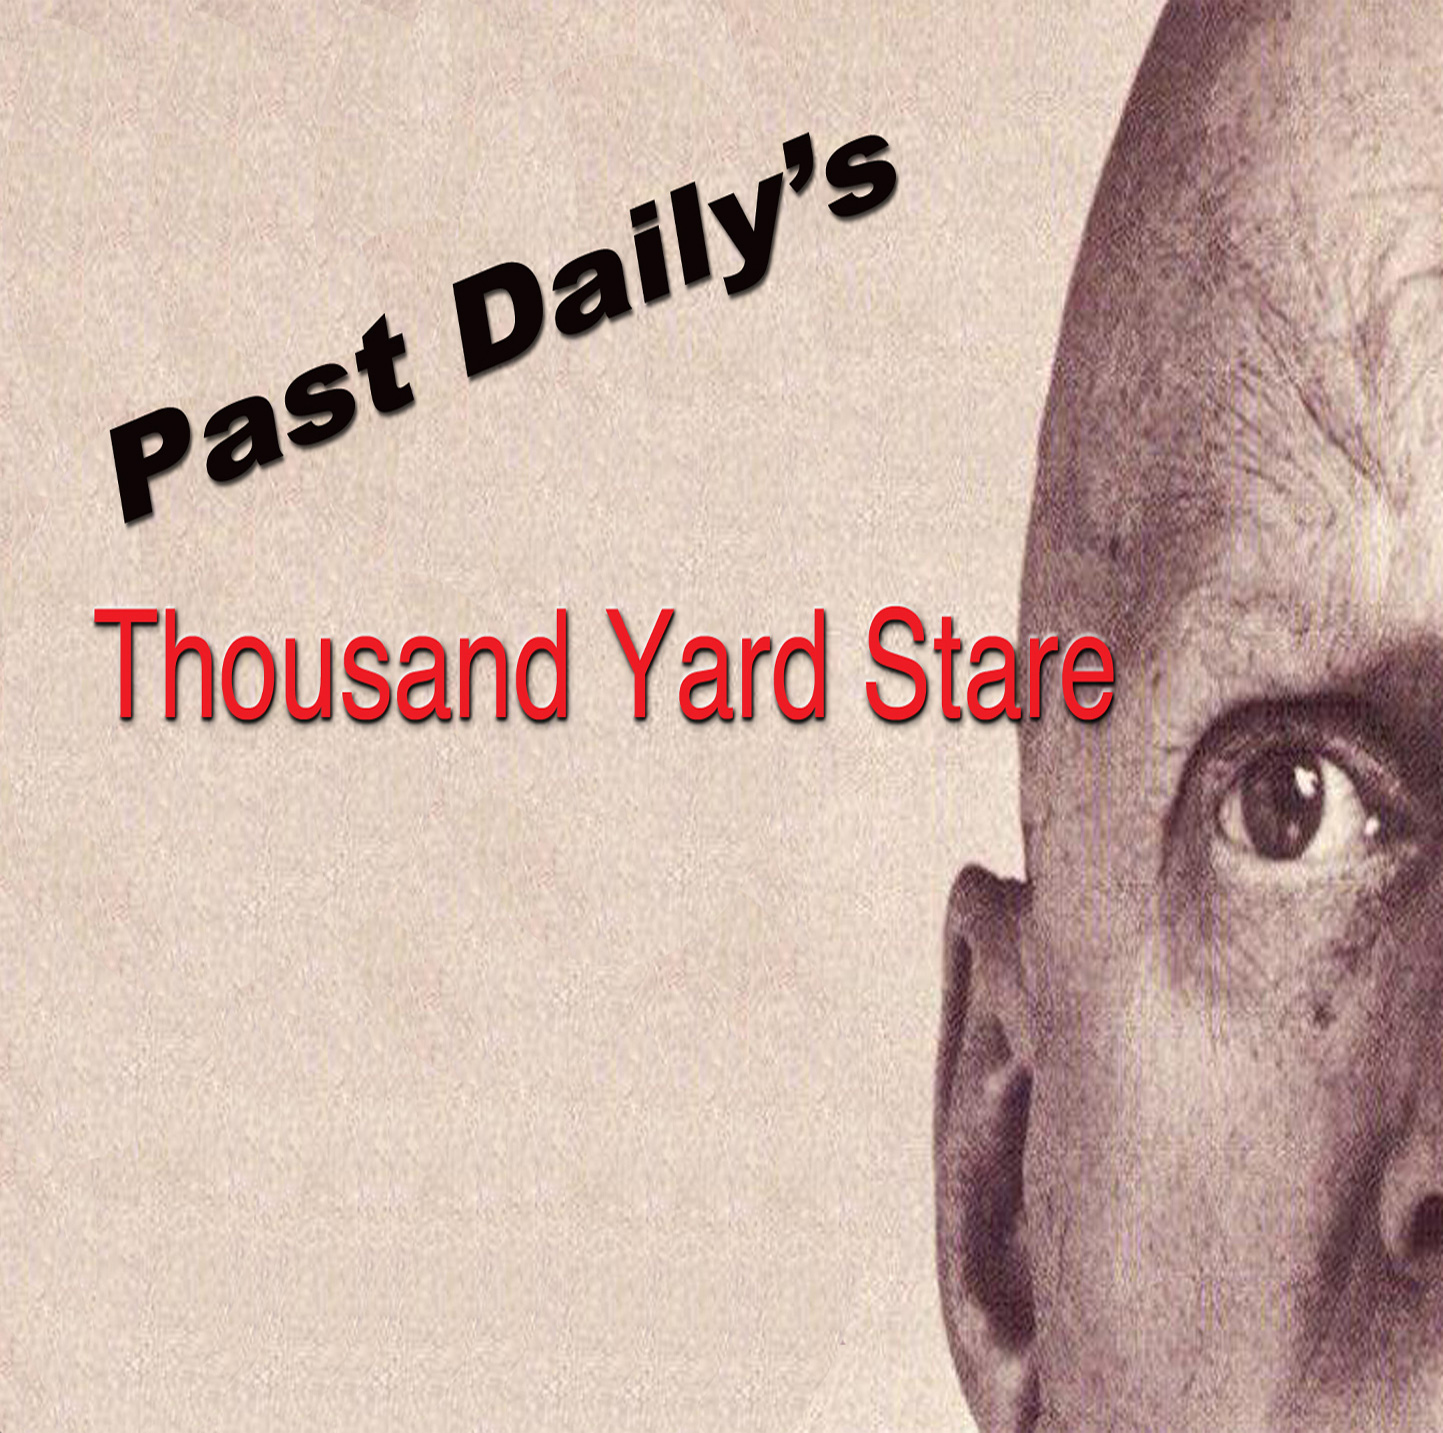 Past Daily's Very Own Podcast Just Got Started